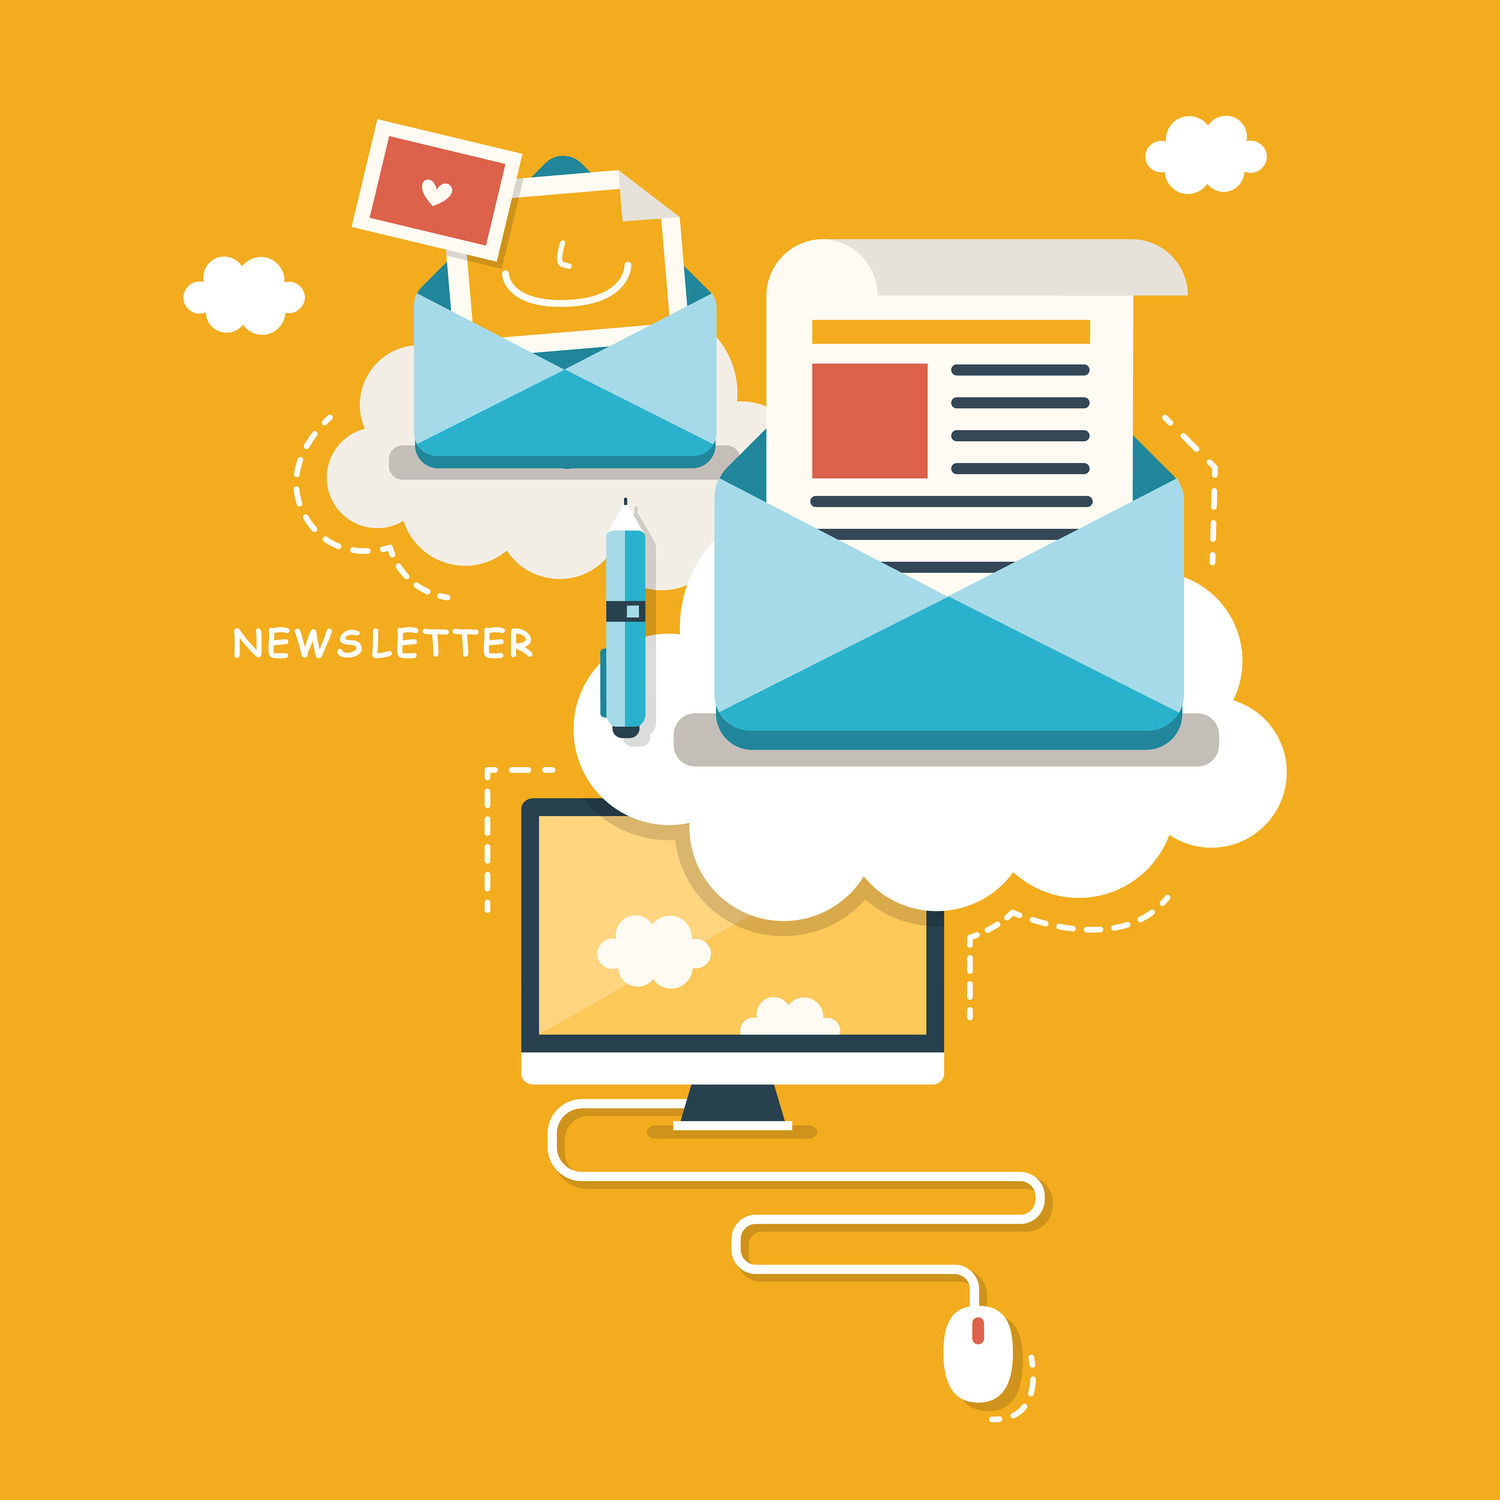 Email Marketing: Get Your Subscribers to Take Action